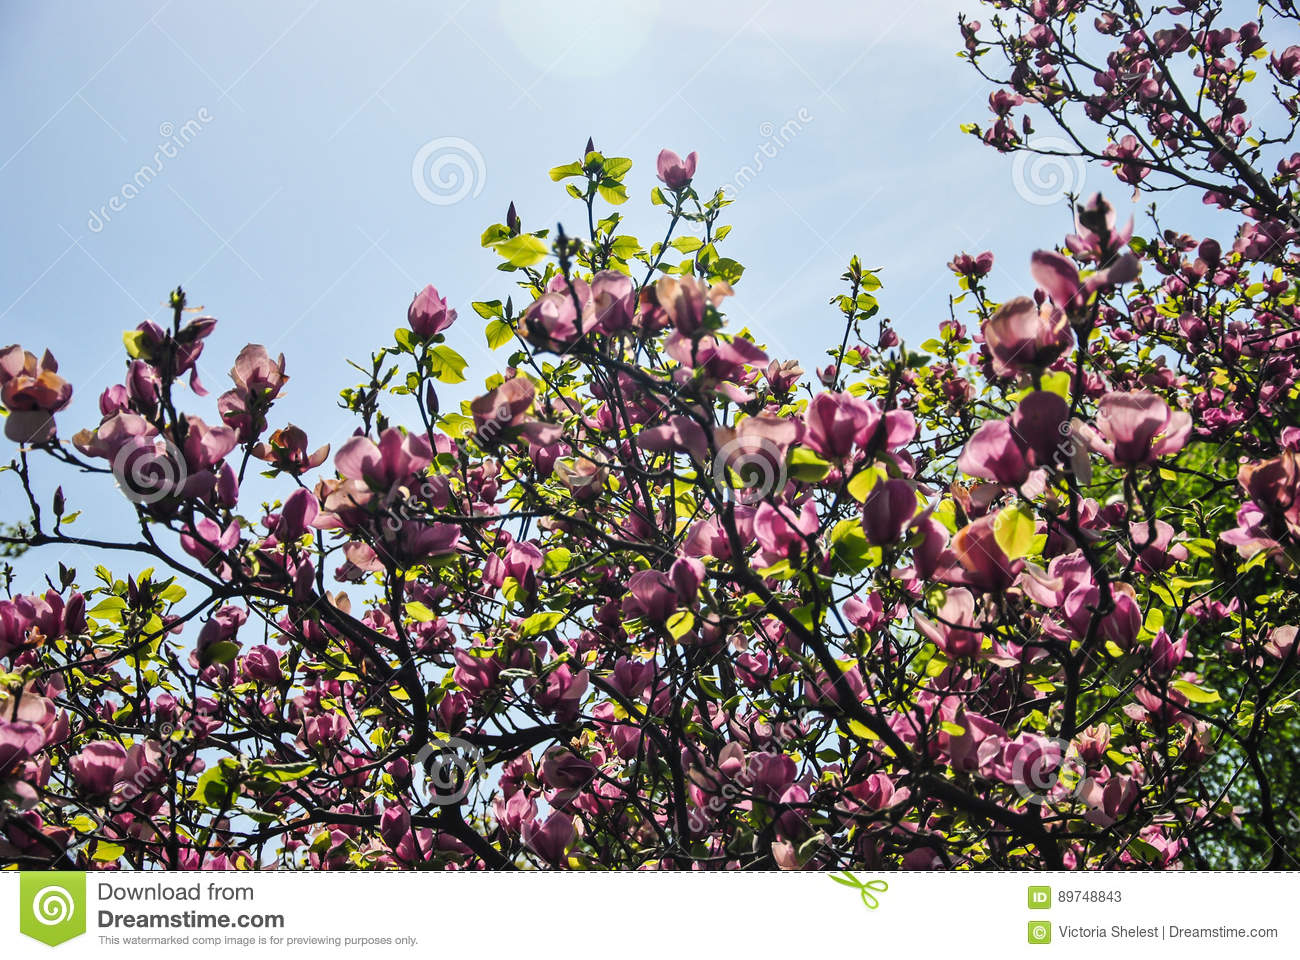 Magnolia tree with a plenty of pink and purple flowers at botanical download magnolia tree with a plenty of pink and purple flowers at botanical garden stock image mightylinksfo